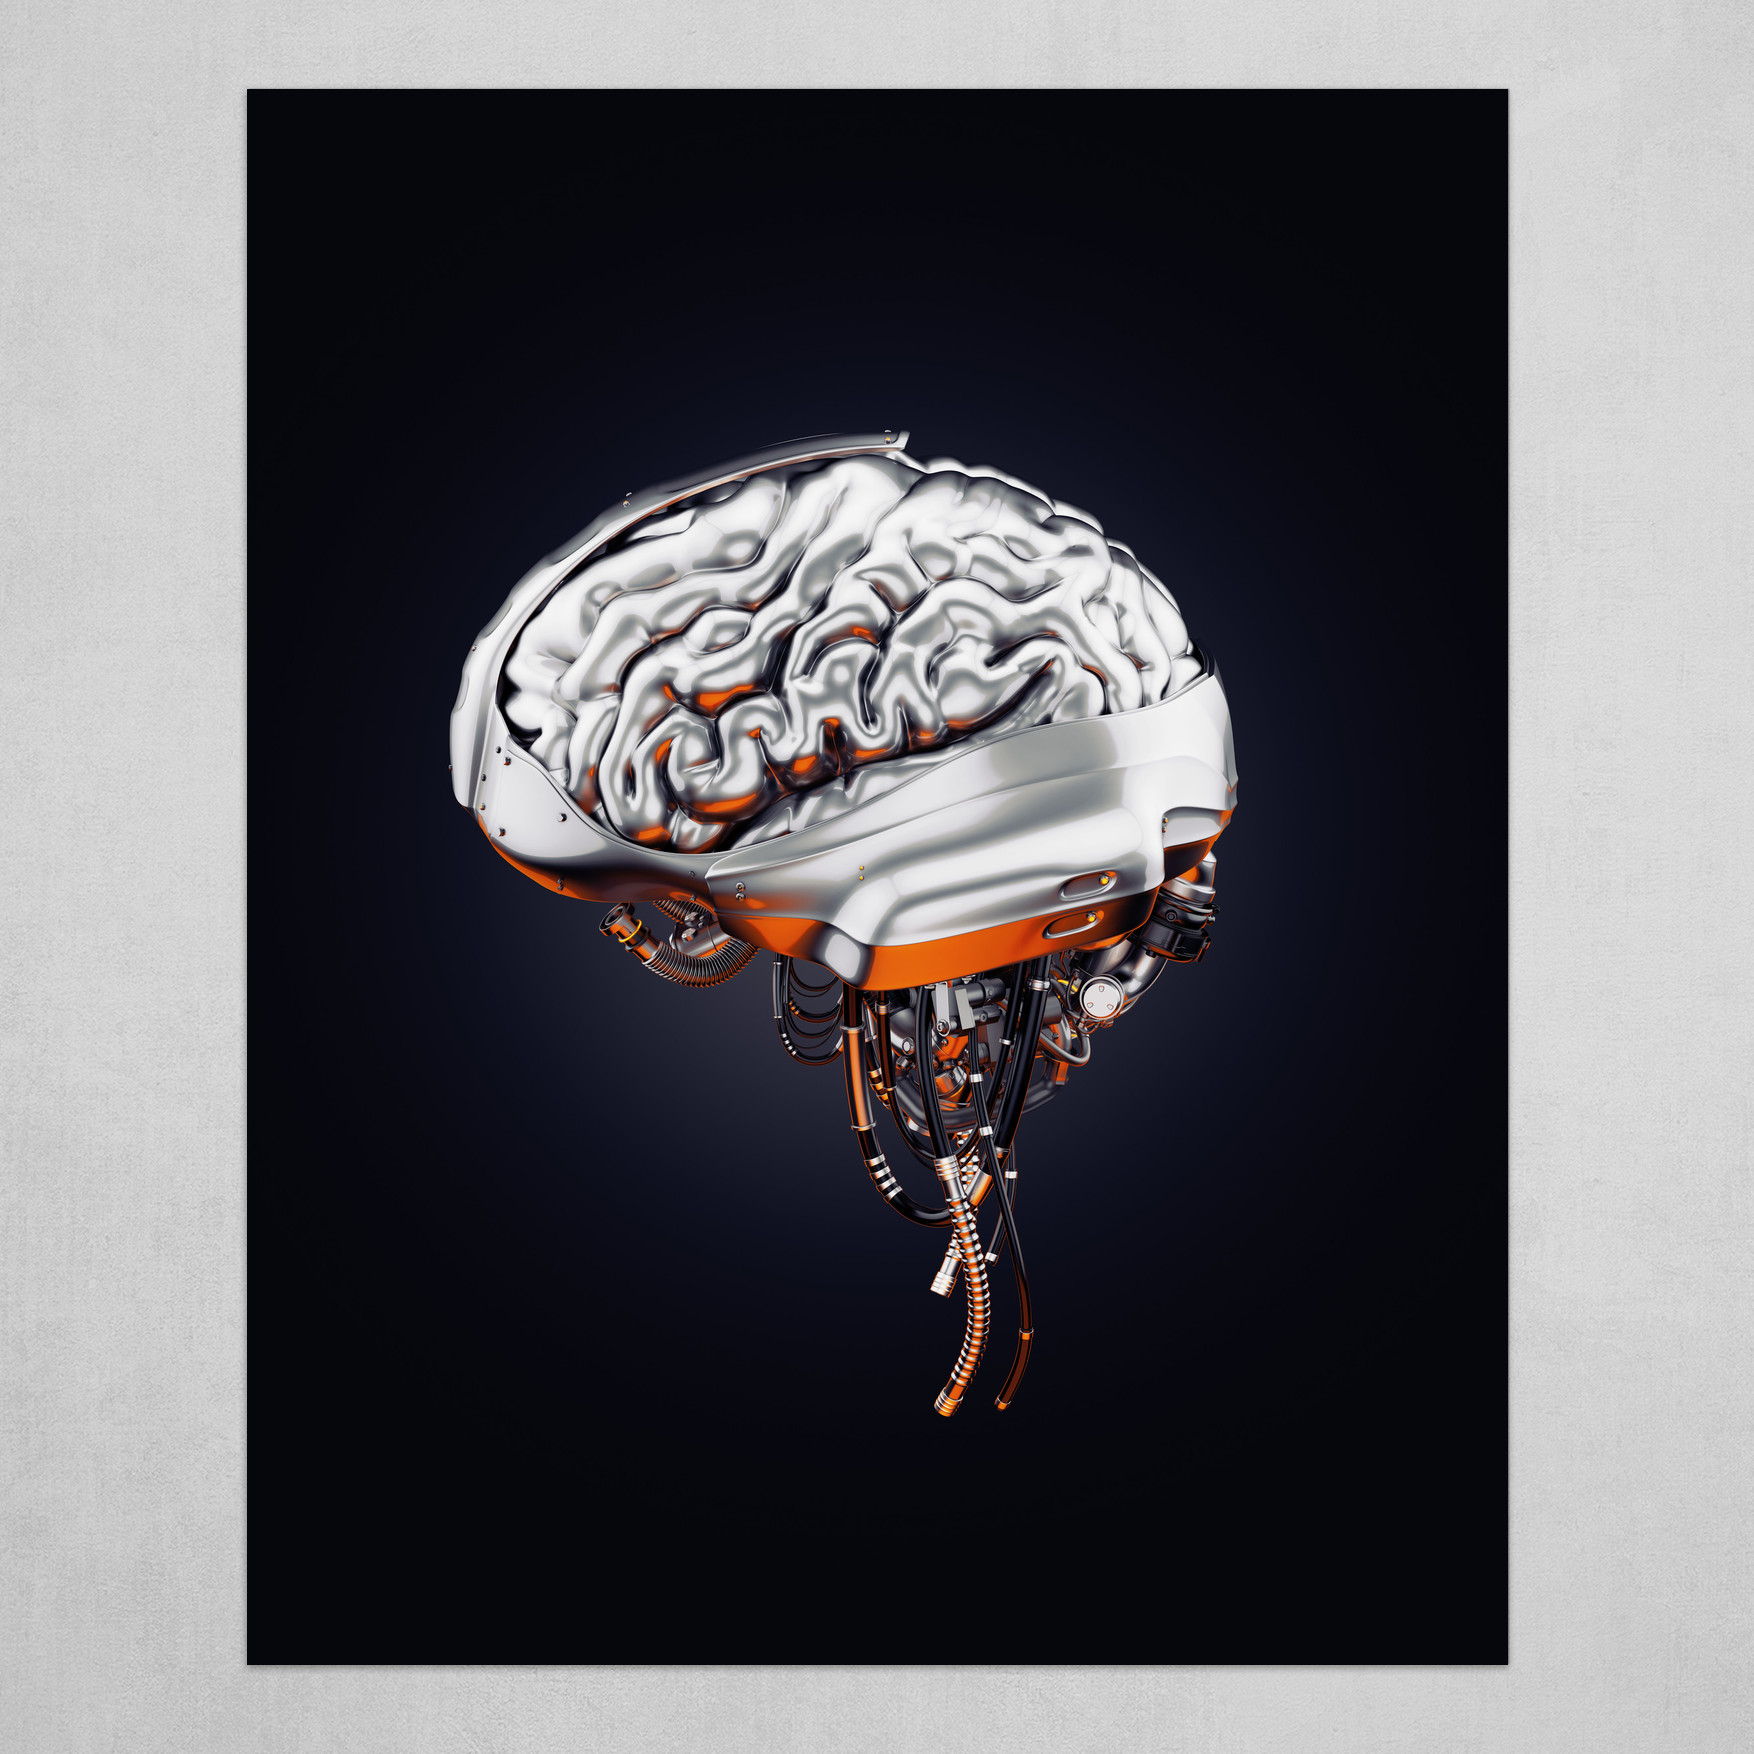 Steel robotic brain